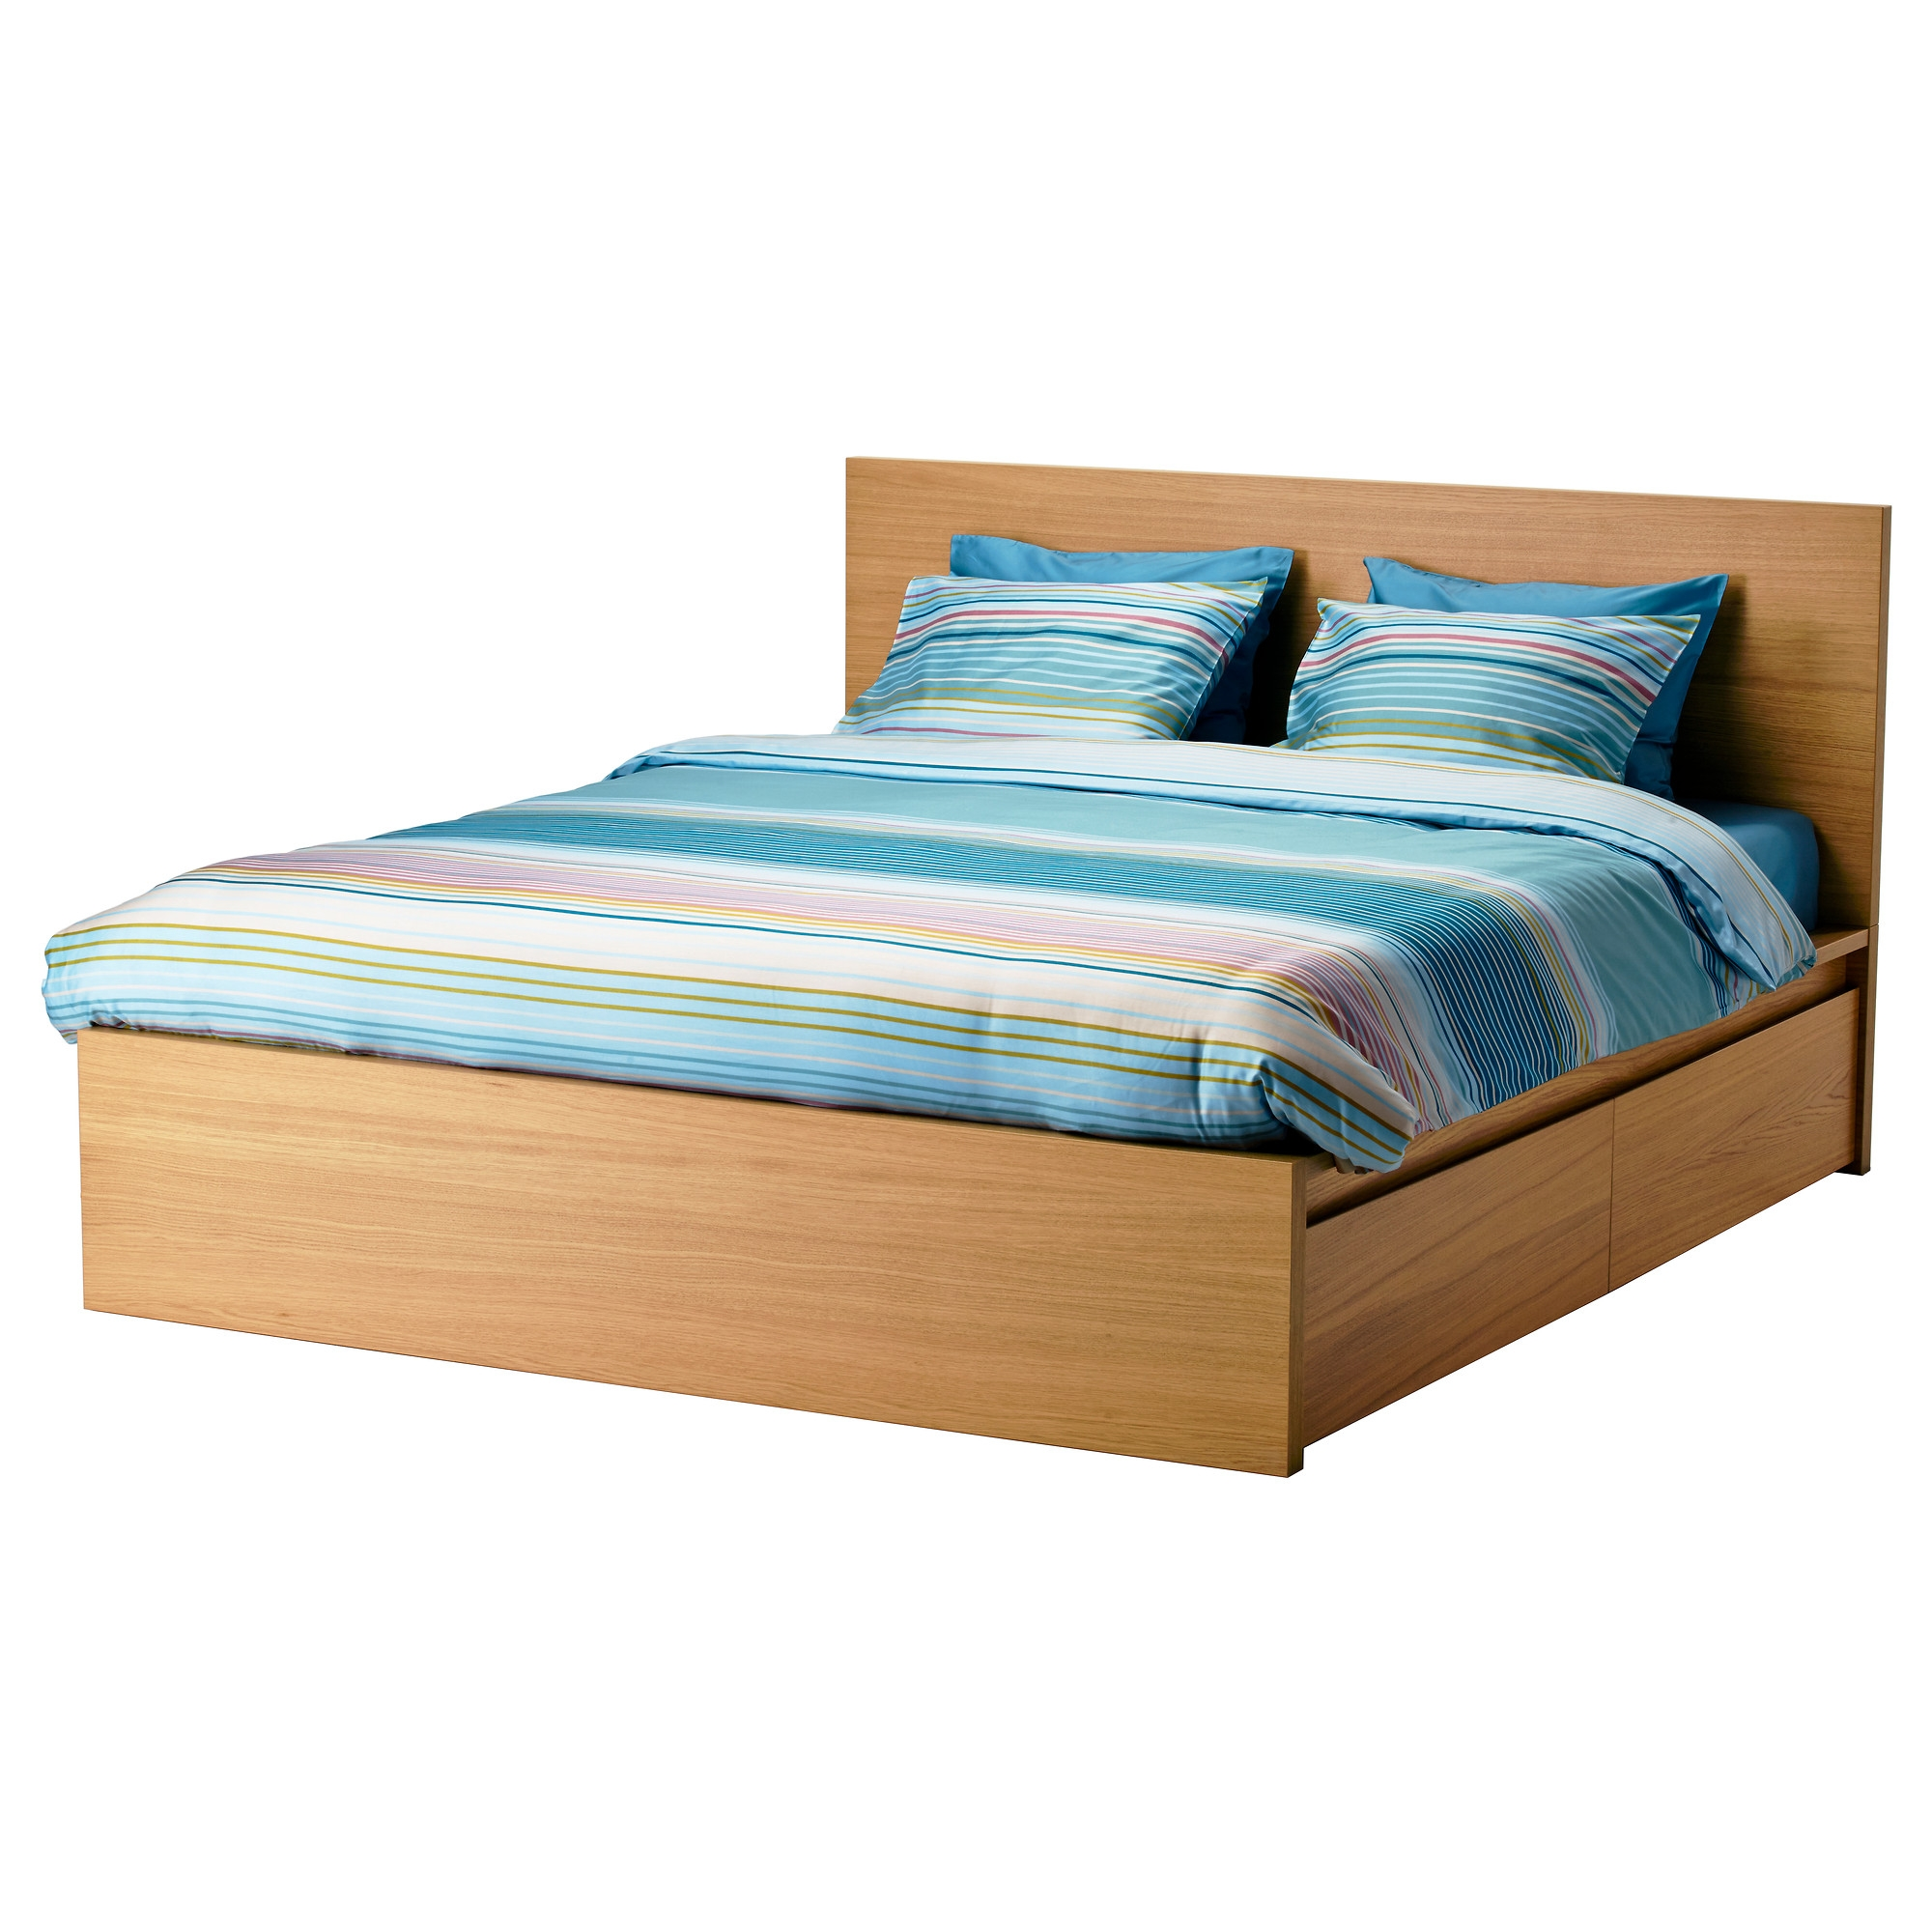 Permalink to Malm Bed Frame With Storage